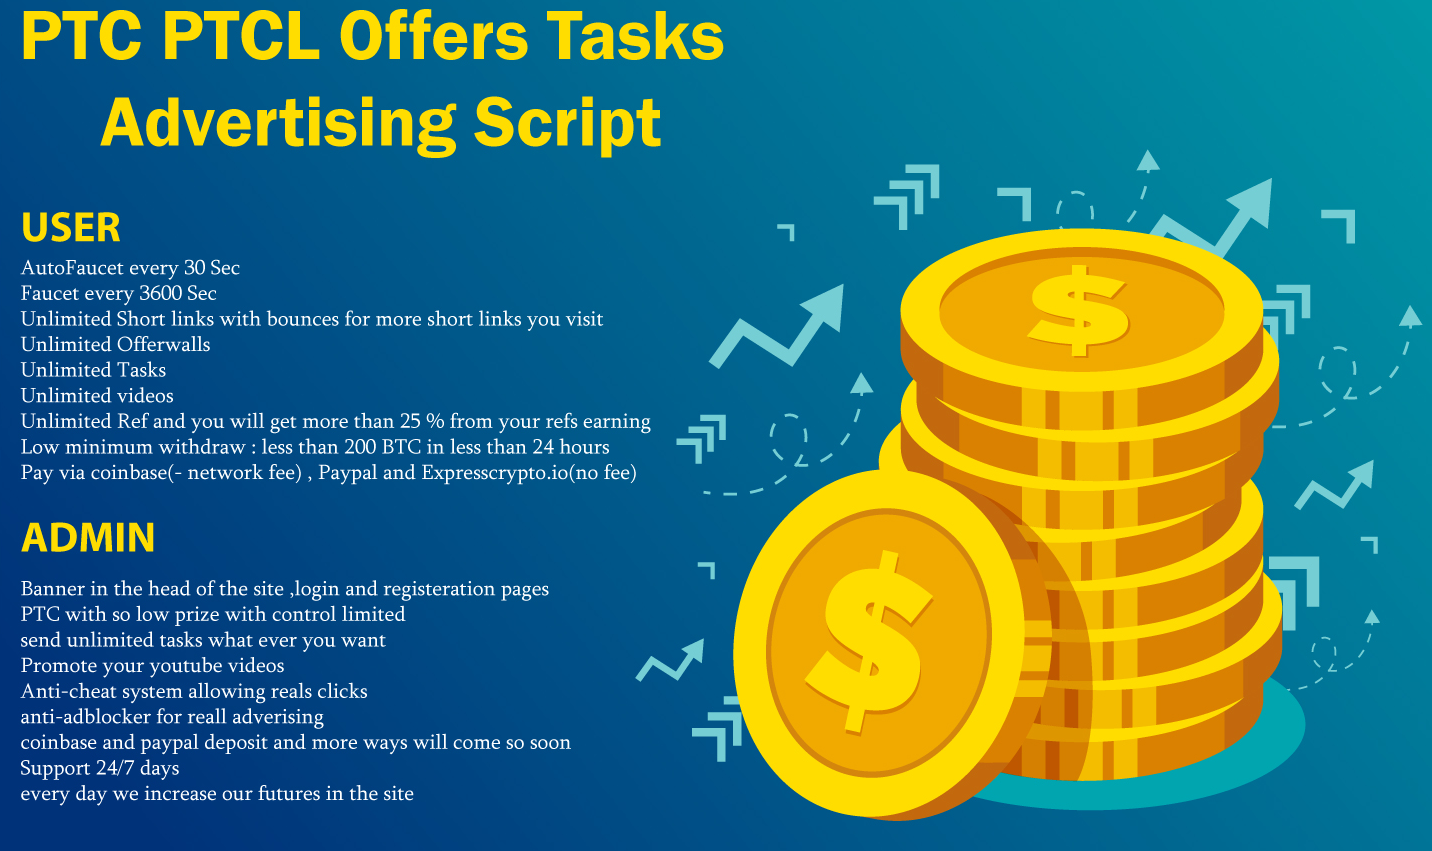 create Script include PTC PTCL Offers Tasks Advertising